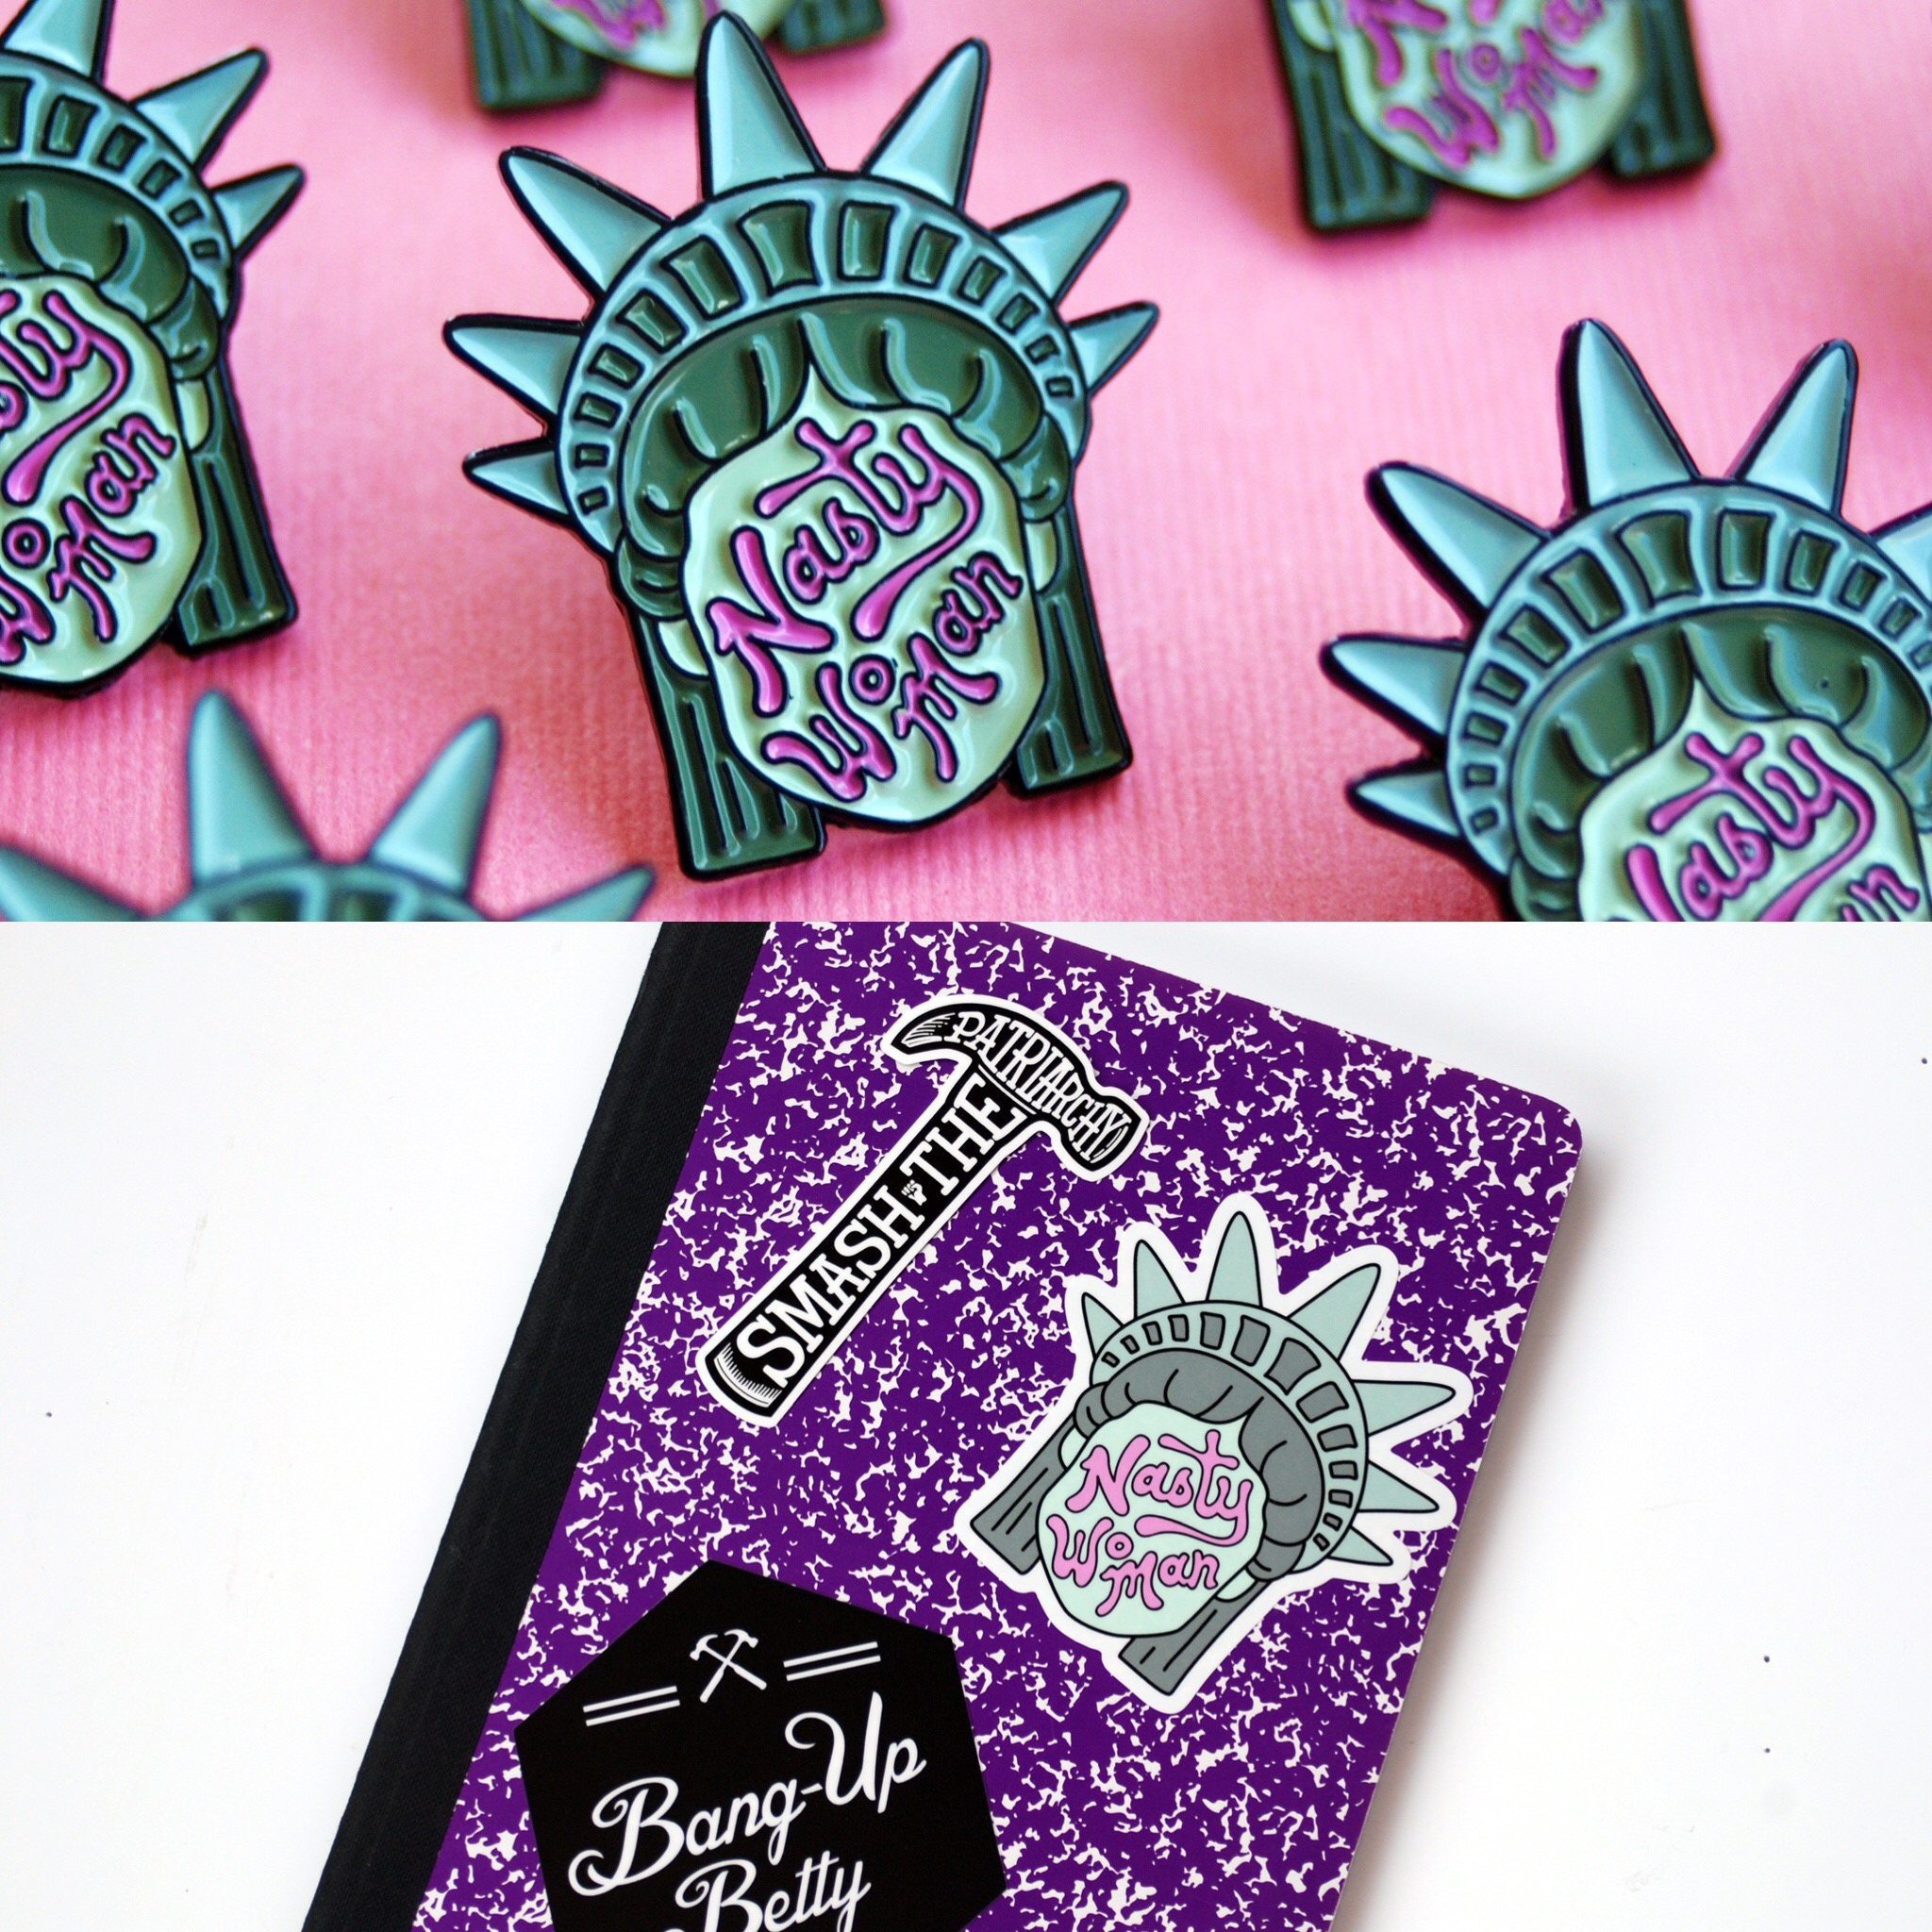 Nasty Woman Feminist Lapel pin and sticker by Bang-Up Betty give a portion of the proceeds to charity.